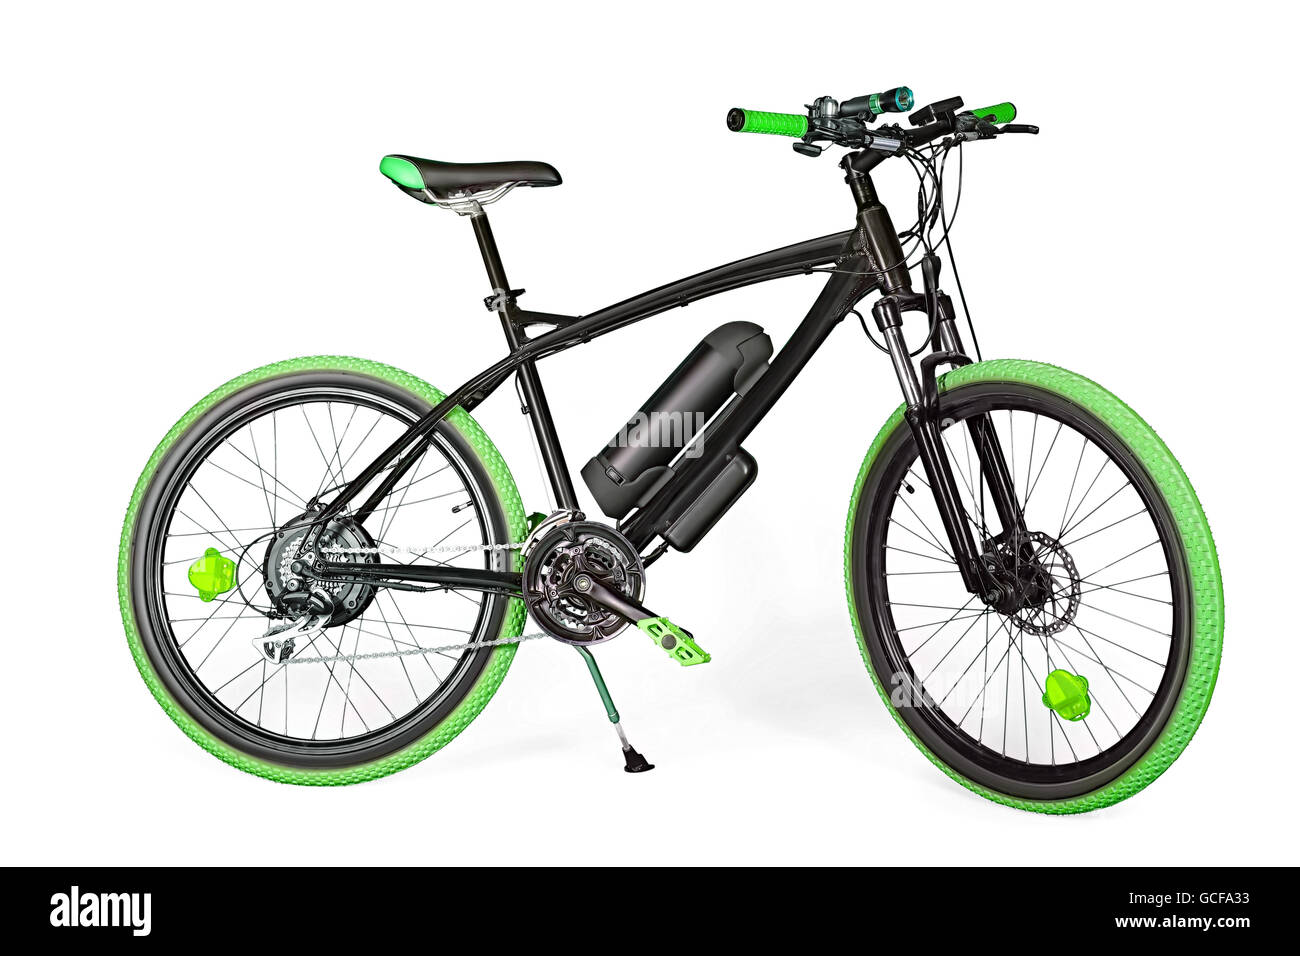 Black and green electric bike isolated on white with clipping path - Stock Image